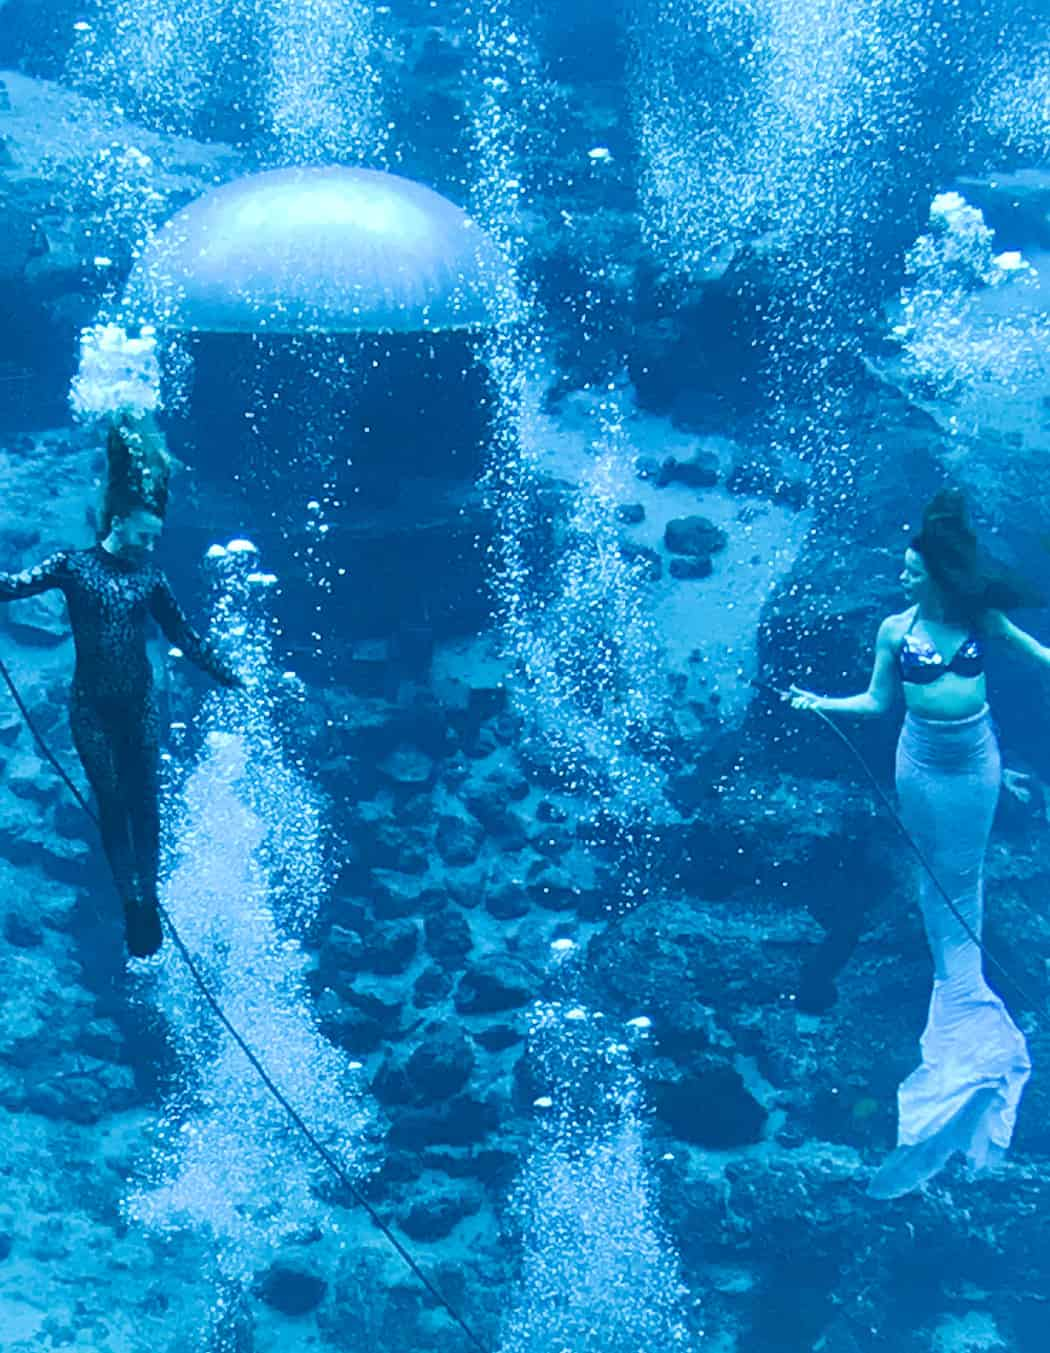 Mermaids in Little Mermaid show at Weeki Wachee State Park